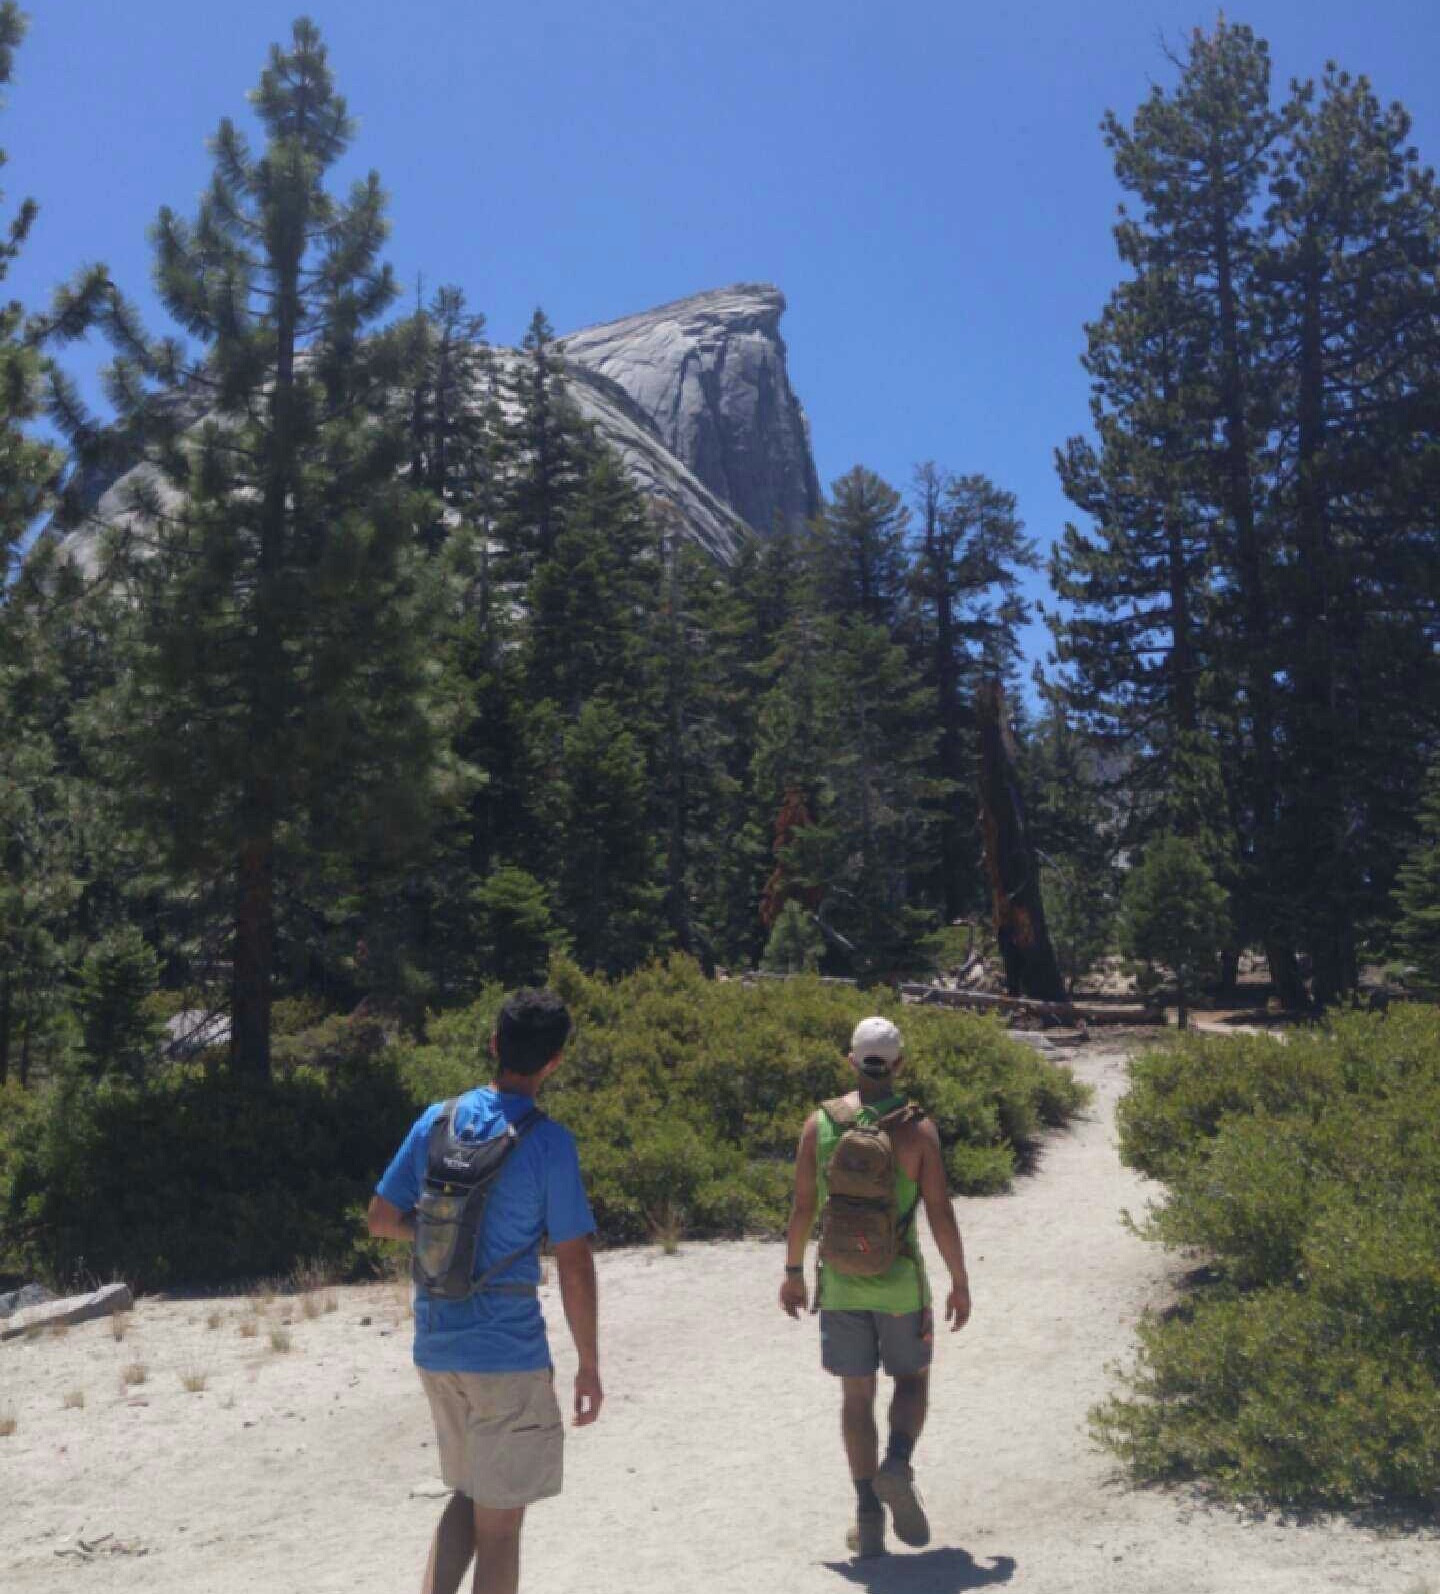 Half Dome looking more impressive the closer we get